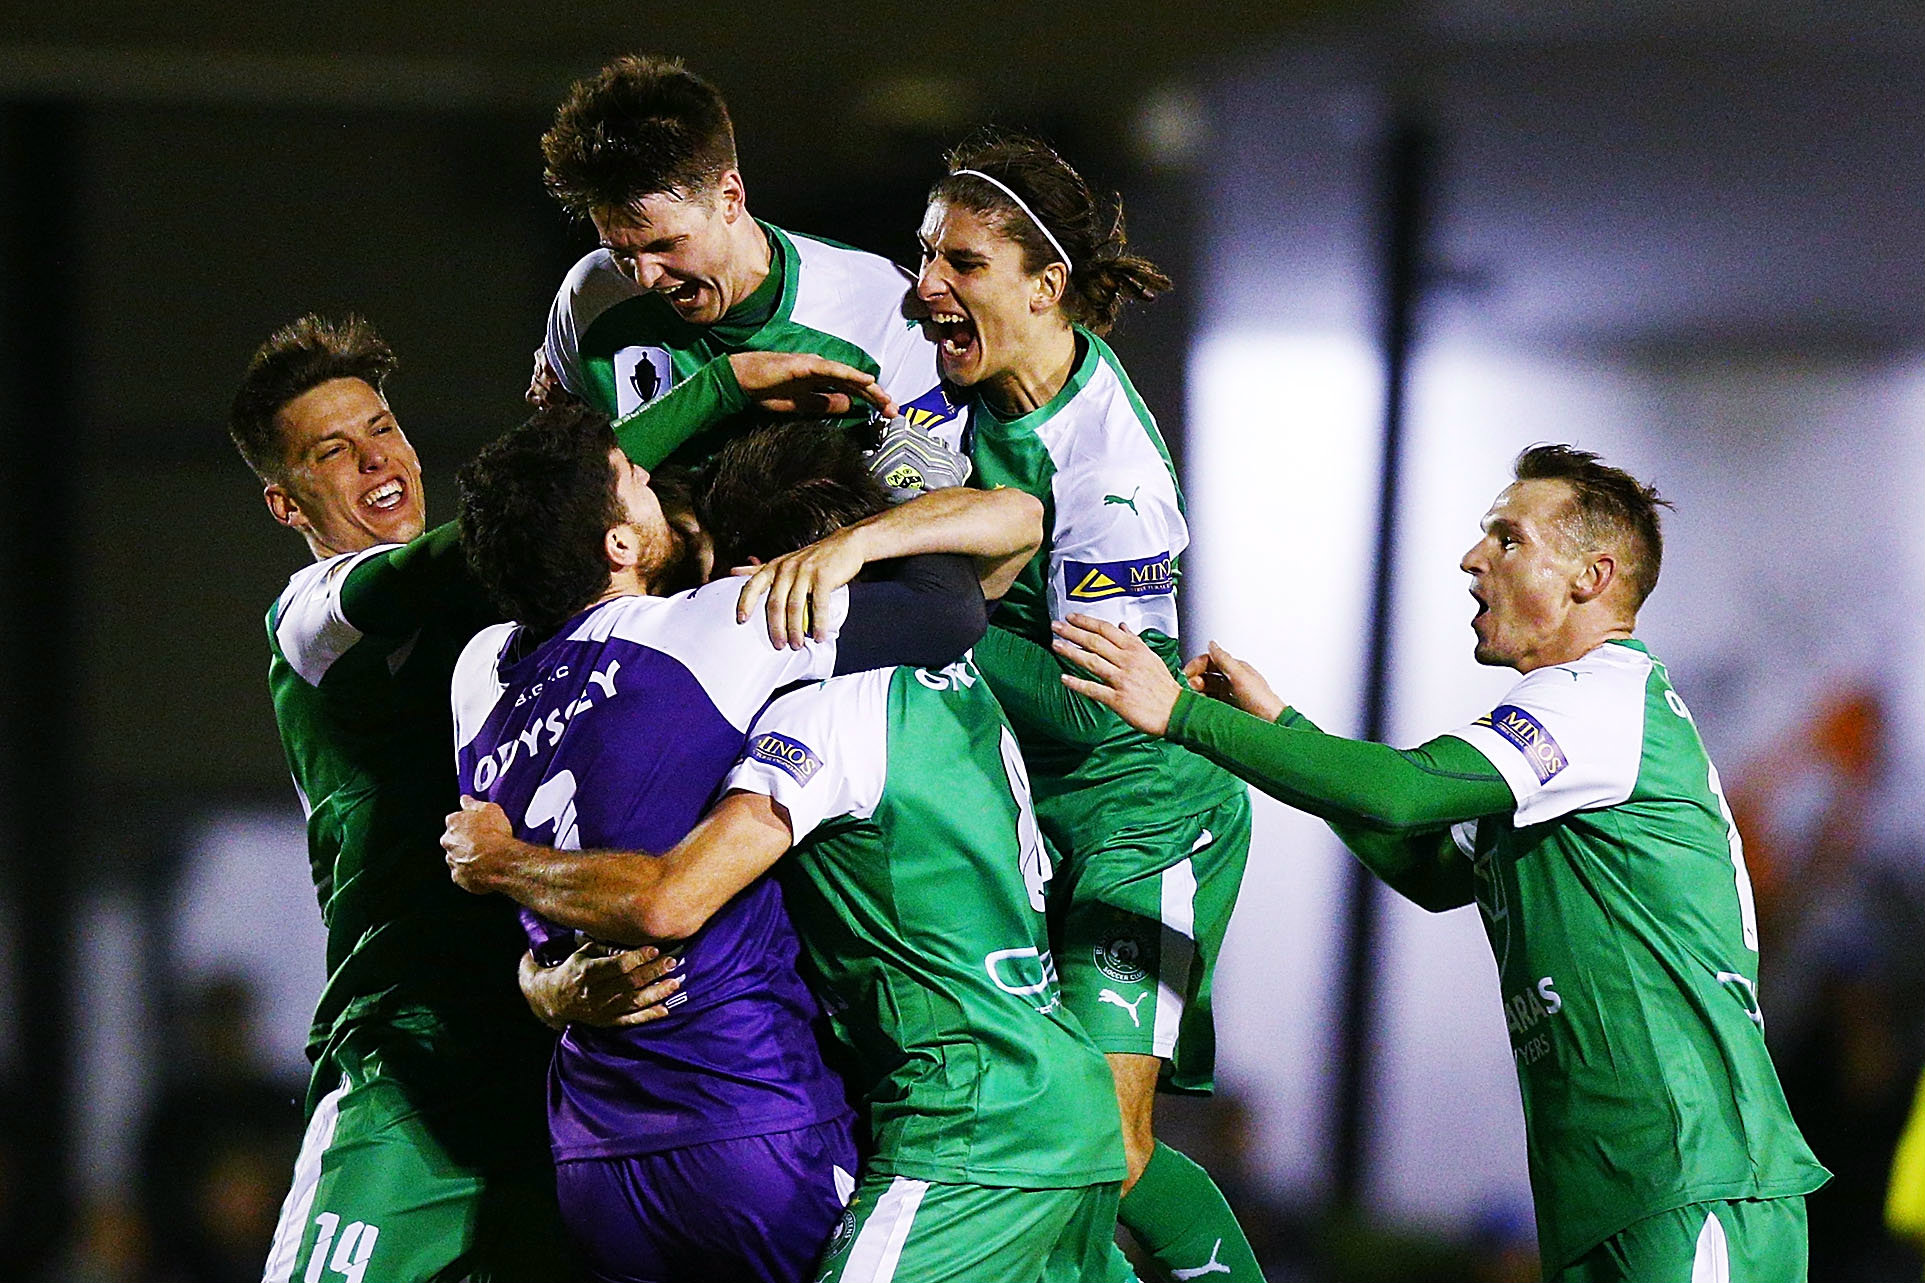 Bentleigh Greens players celebrate